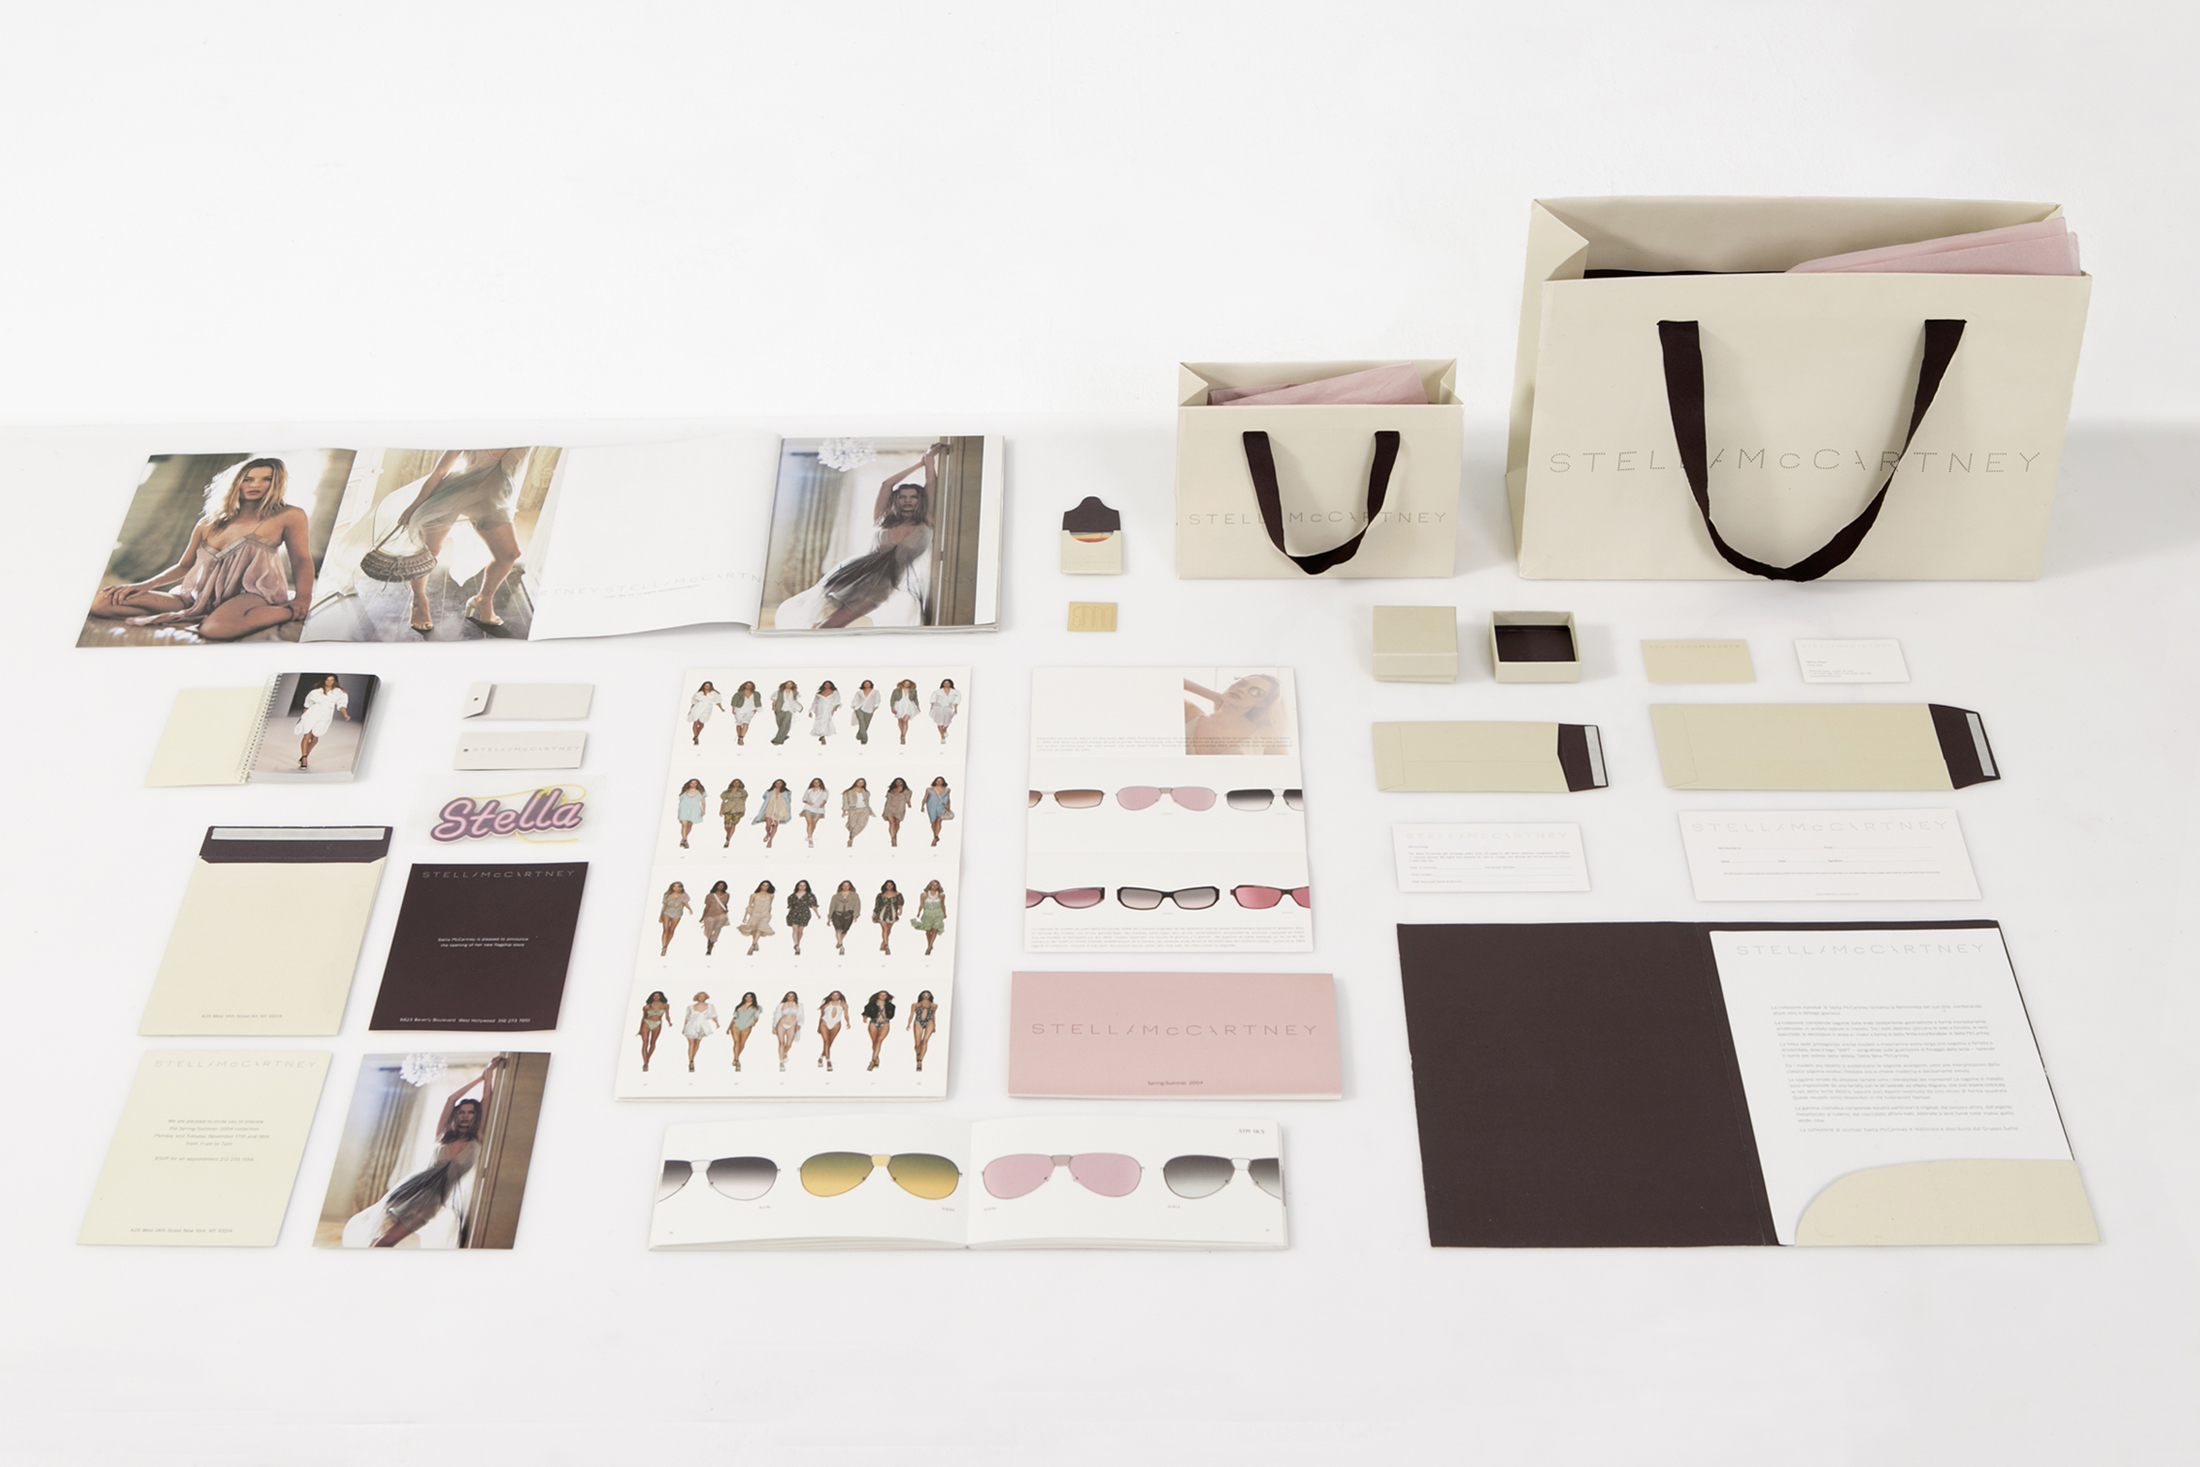 <p><strong>Stella Mccartney</strong><br /> Design for Stationary, Catalogues, Packaging&#8230;</p>